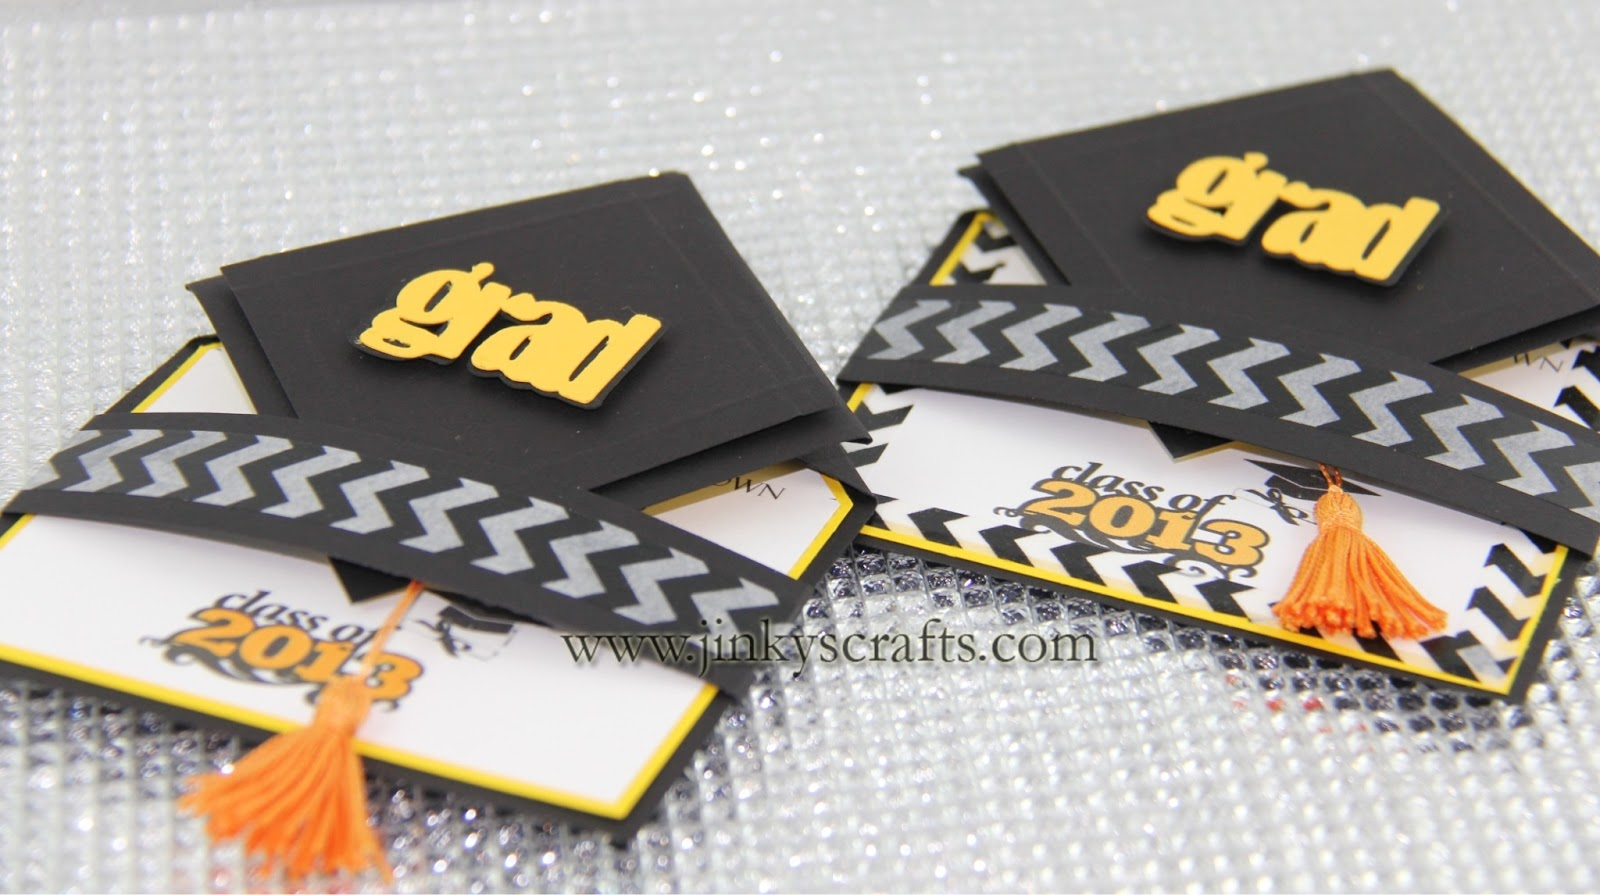 3D Graduation Cap PopUp Invitations Jinkys Crafts